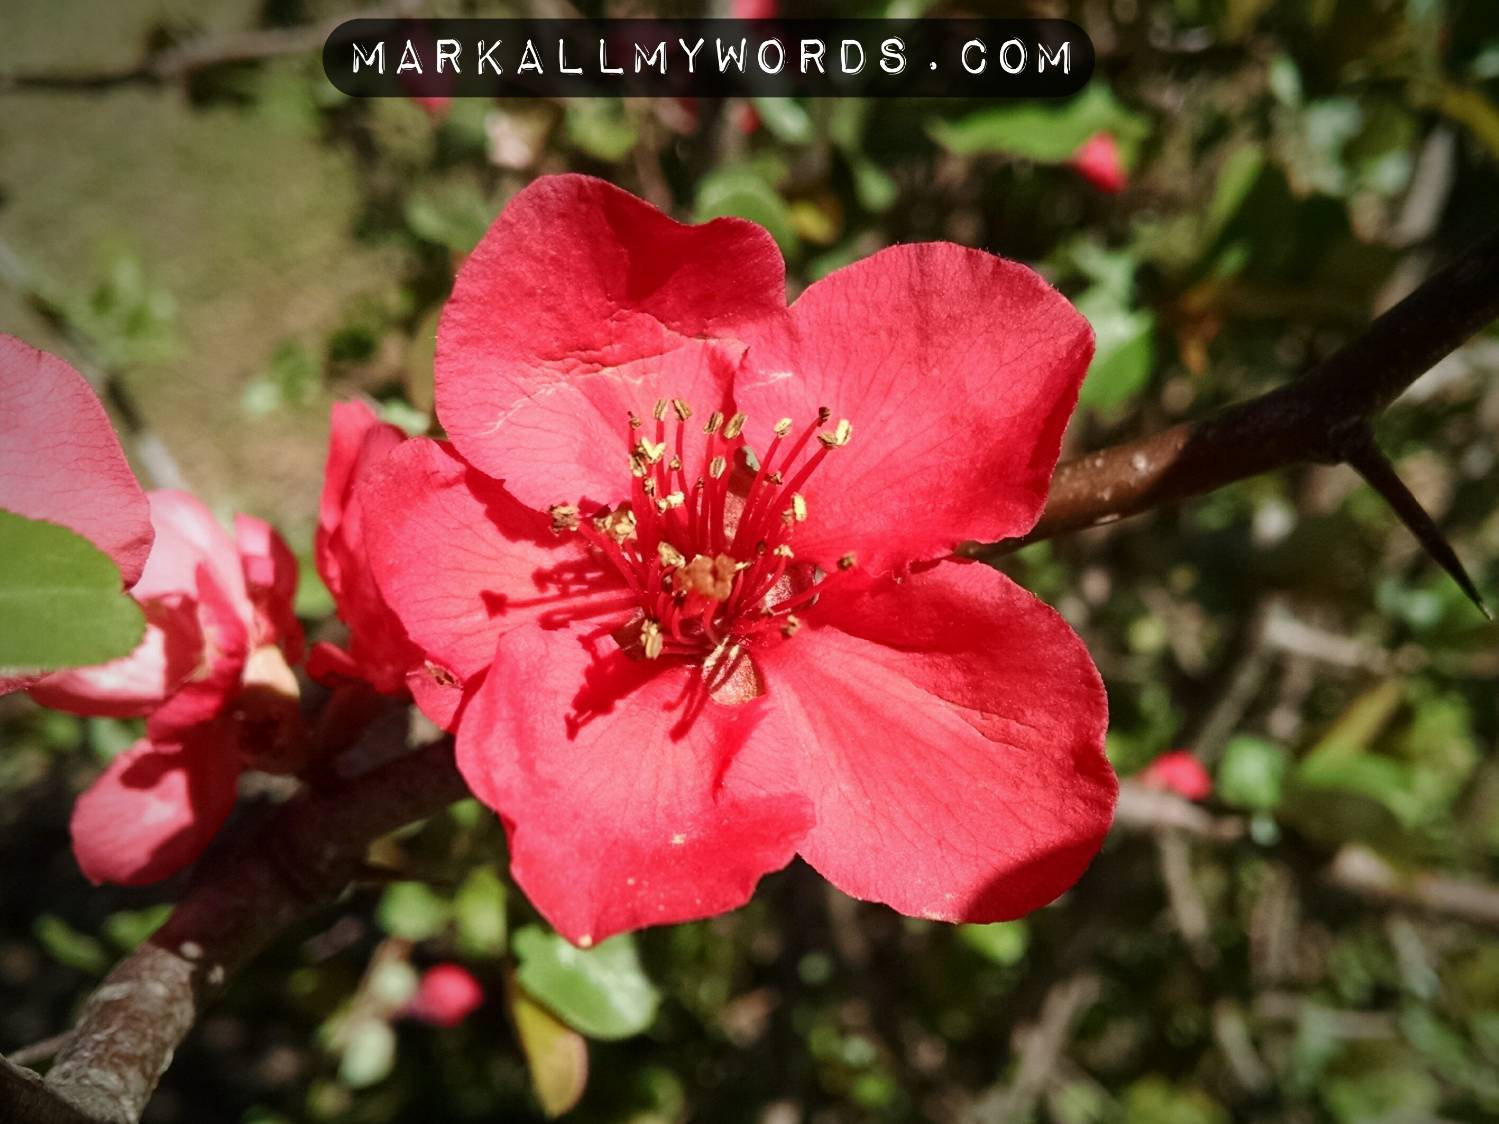 Flowering quince (Chaenomeles speciosa) flower